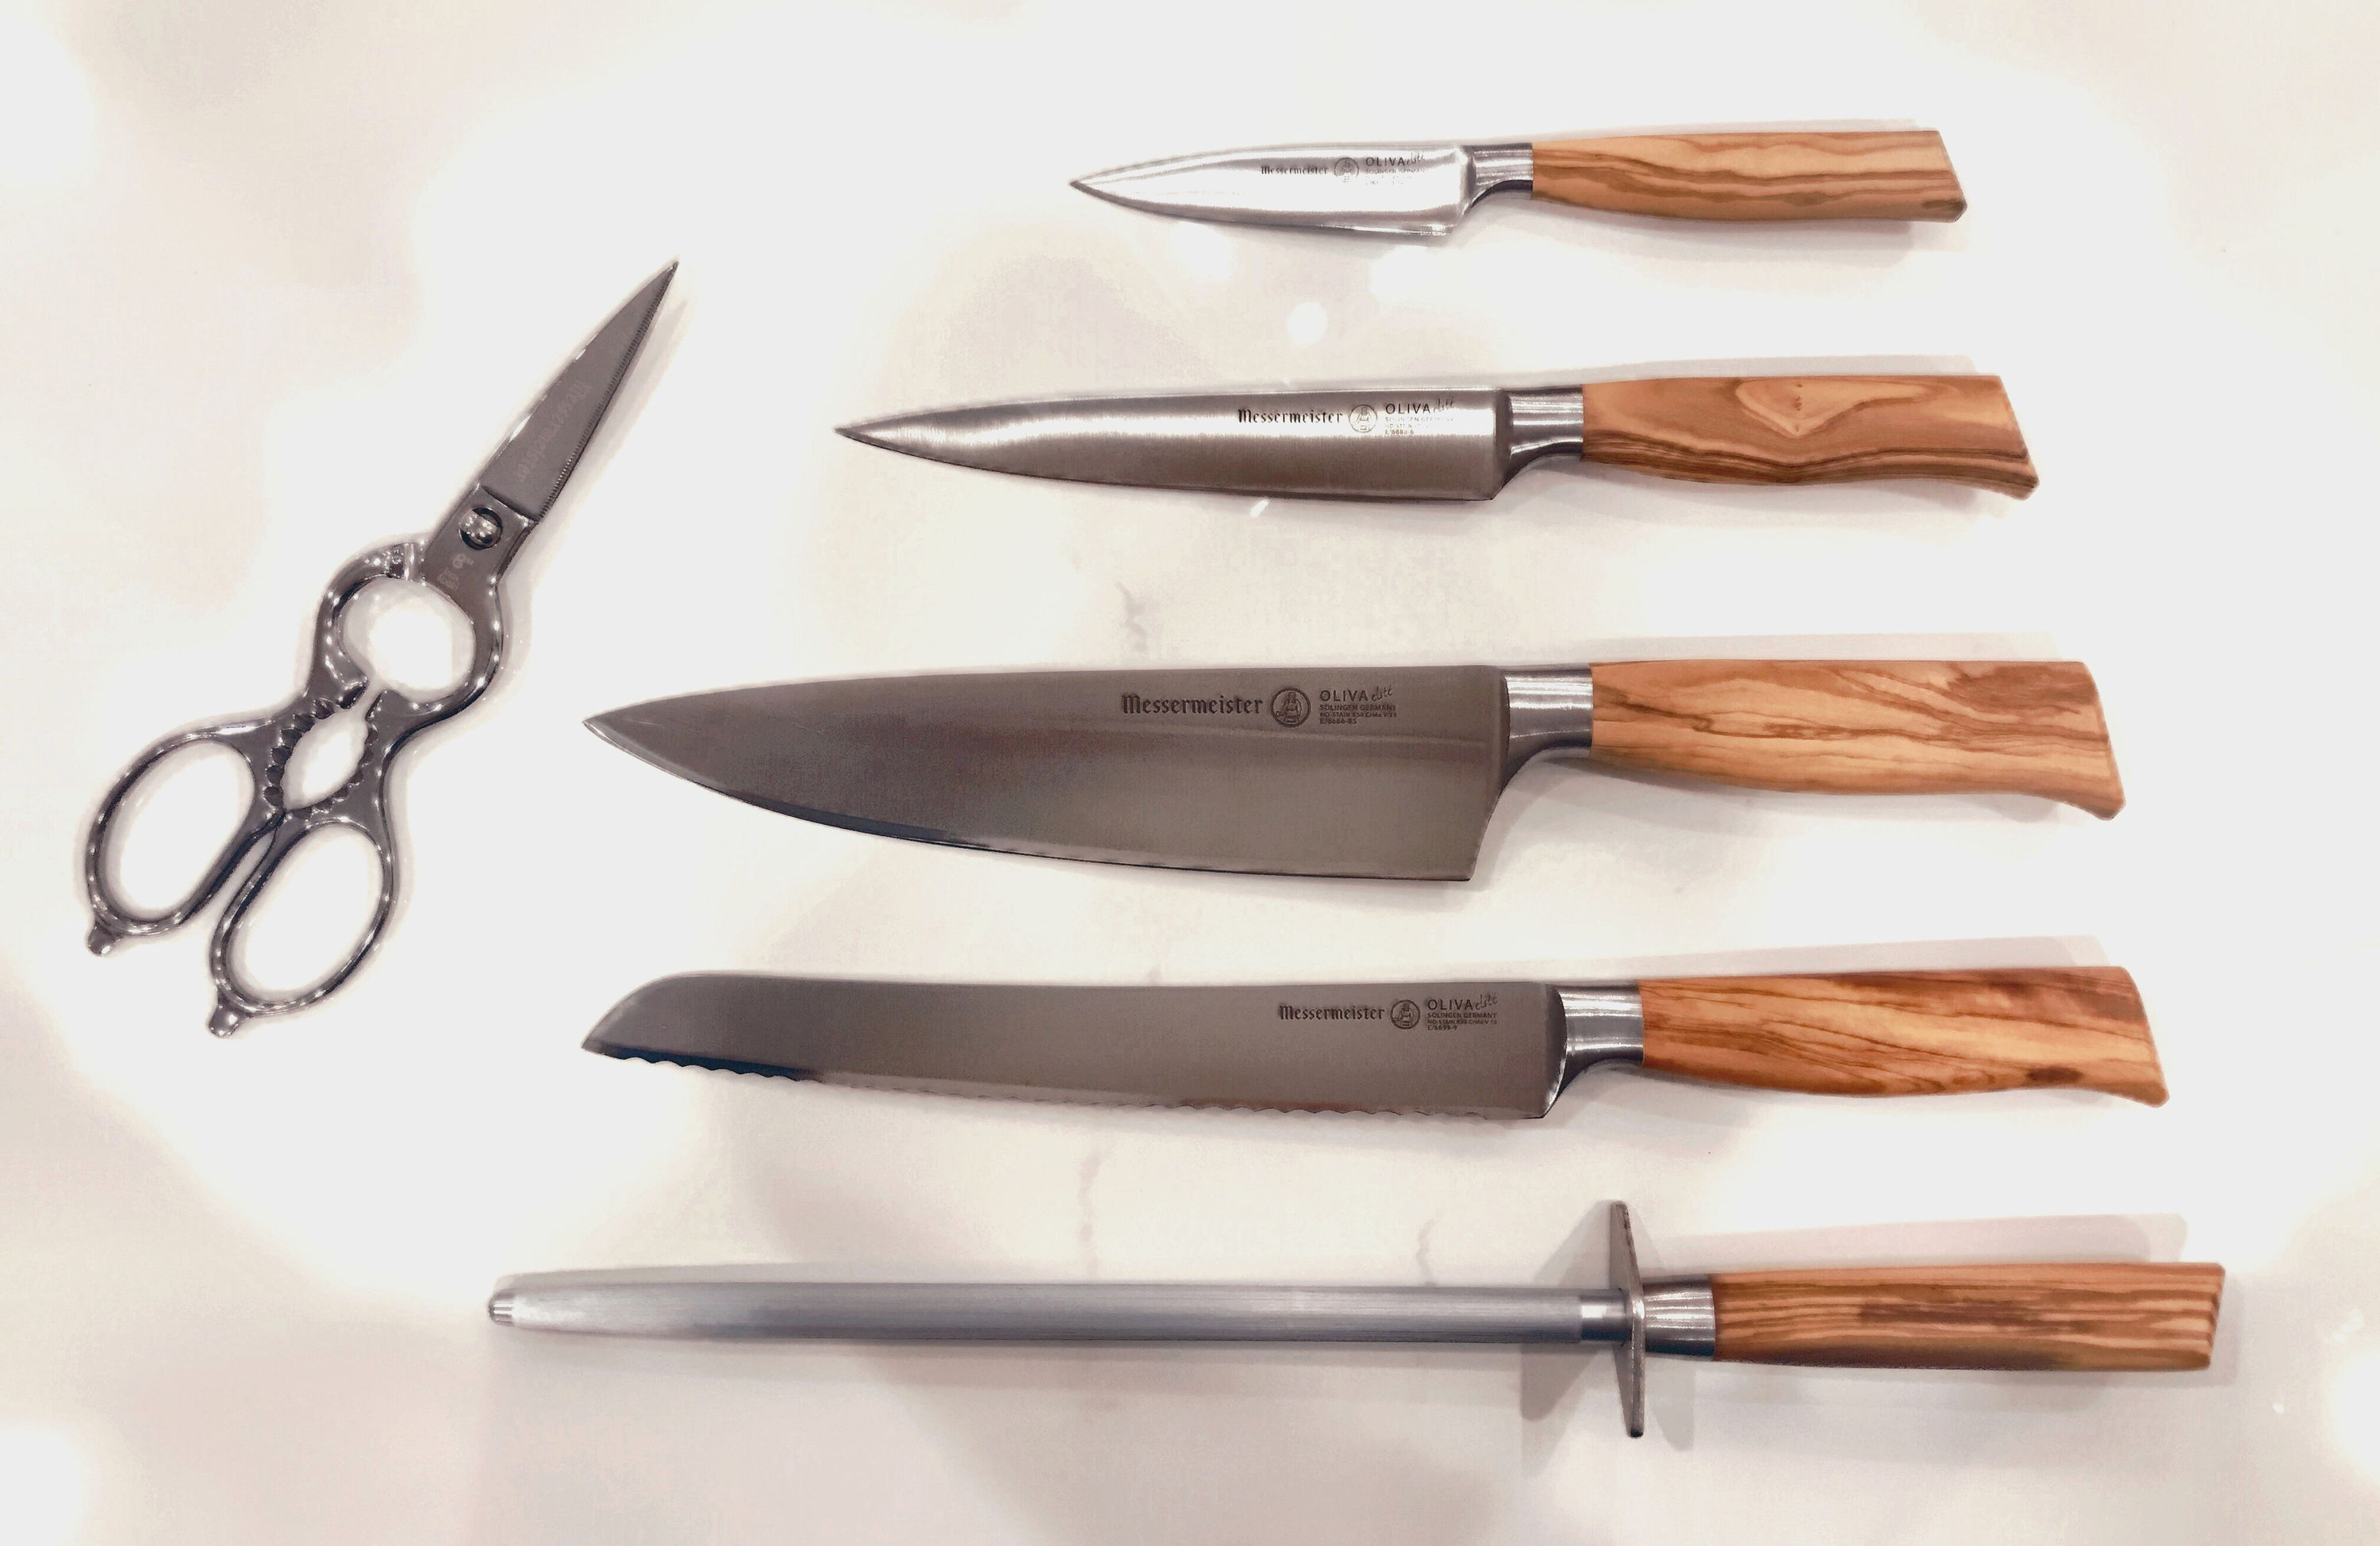 Messermeister Oliva Elite Knife Set with Scissors